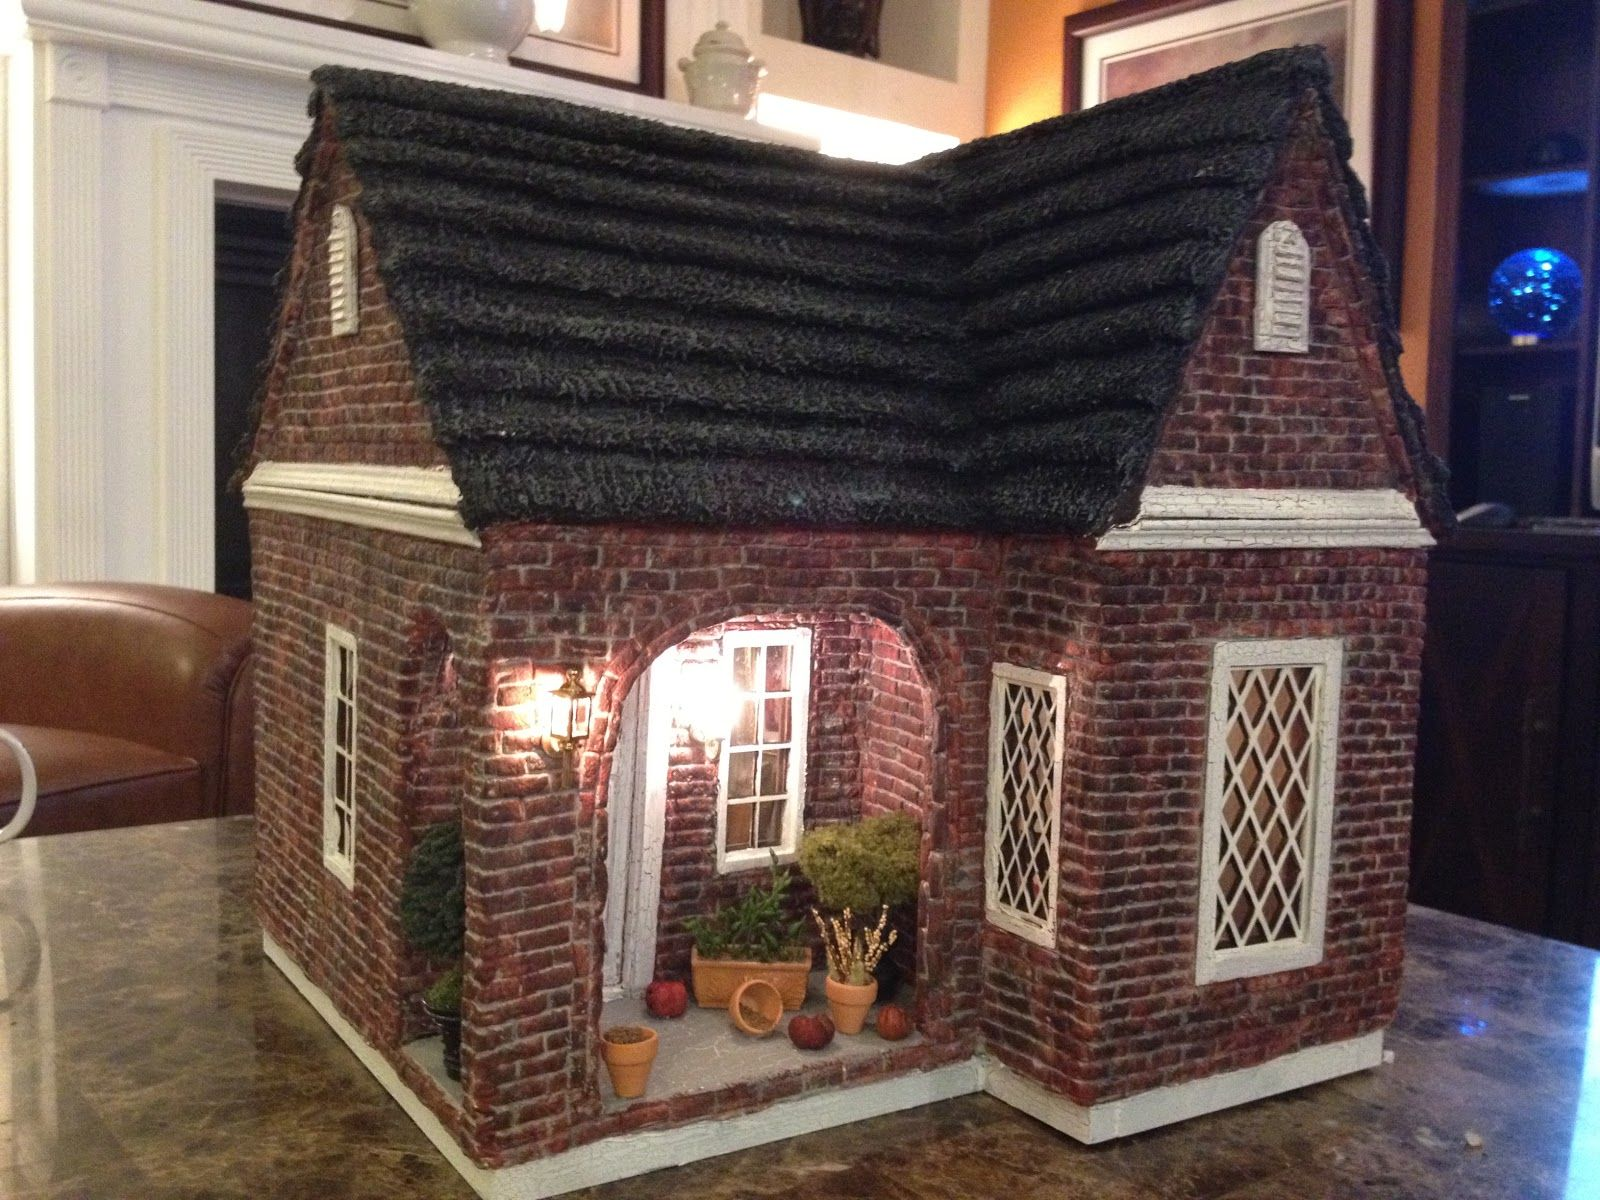 Excellent 17 Best Images About Miniature Houses On Pinterest Dollhouses Largest Home Design Picture Inspirations Pitcheantrous